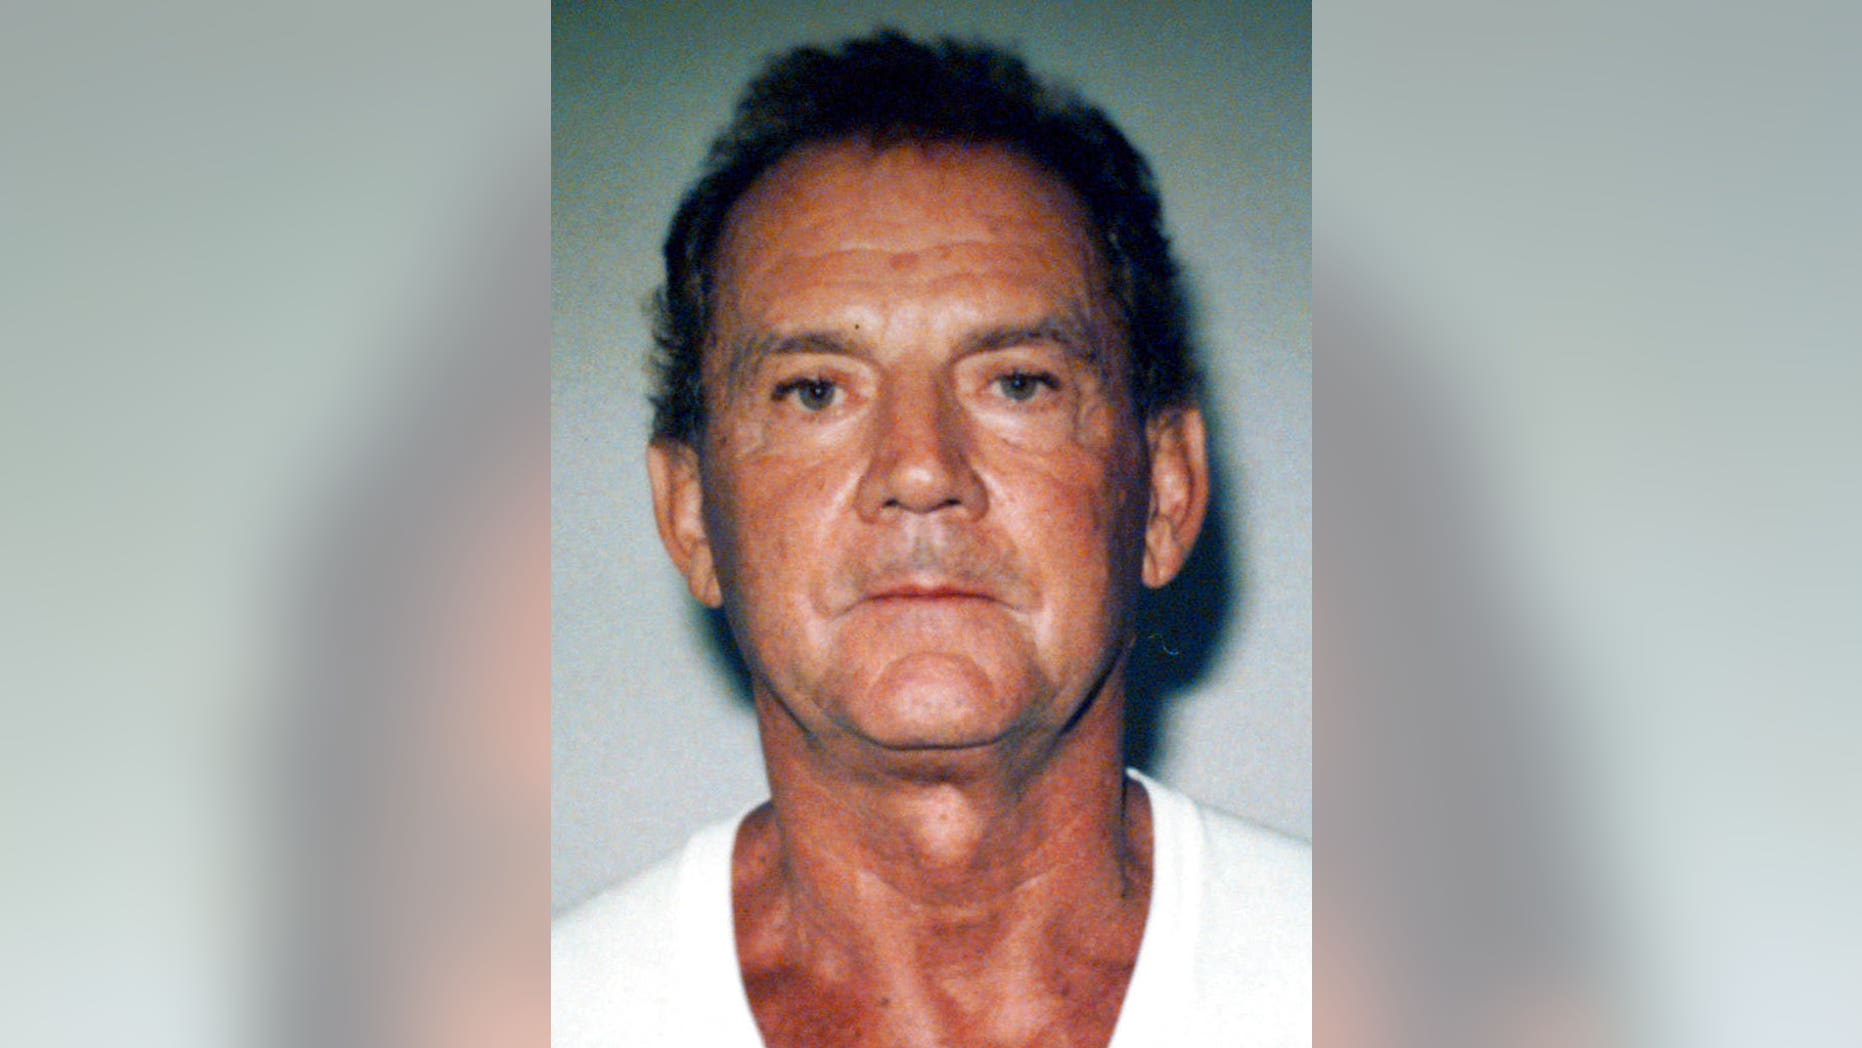 """Francis """"Cadillac Frank"""" Salemme, a former mob boss, is seen in a 1995 file booking photo taken in West Palm, Fla."""